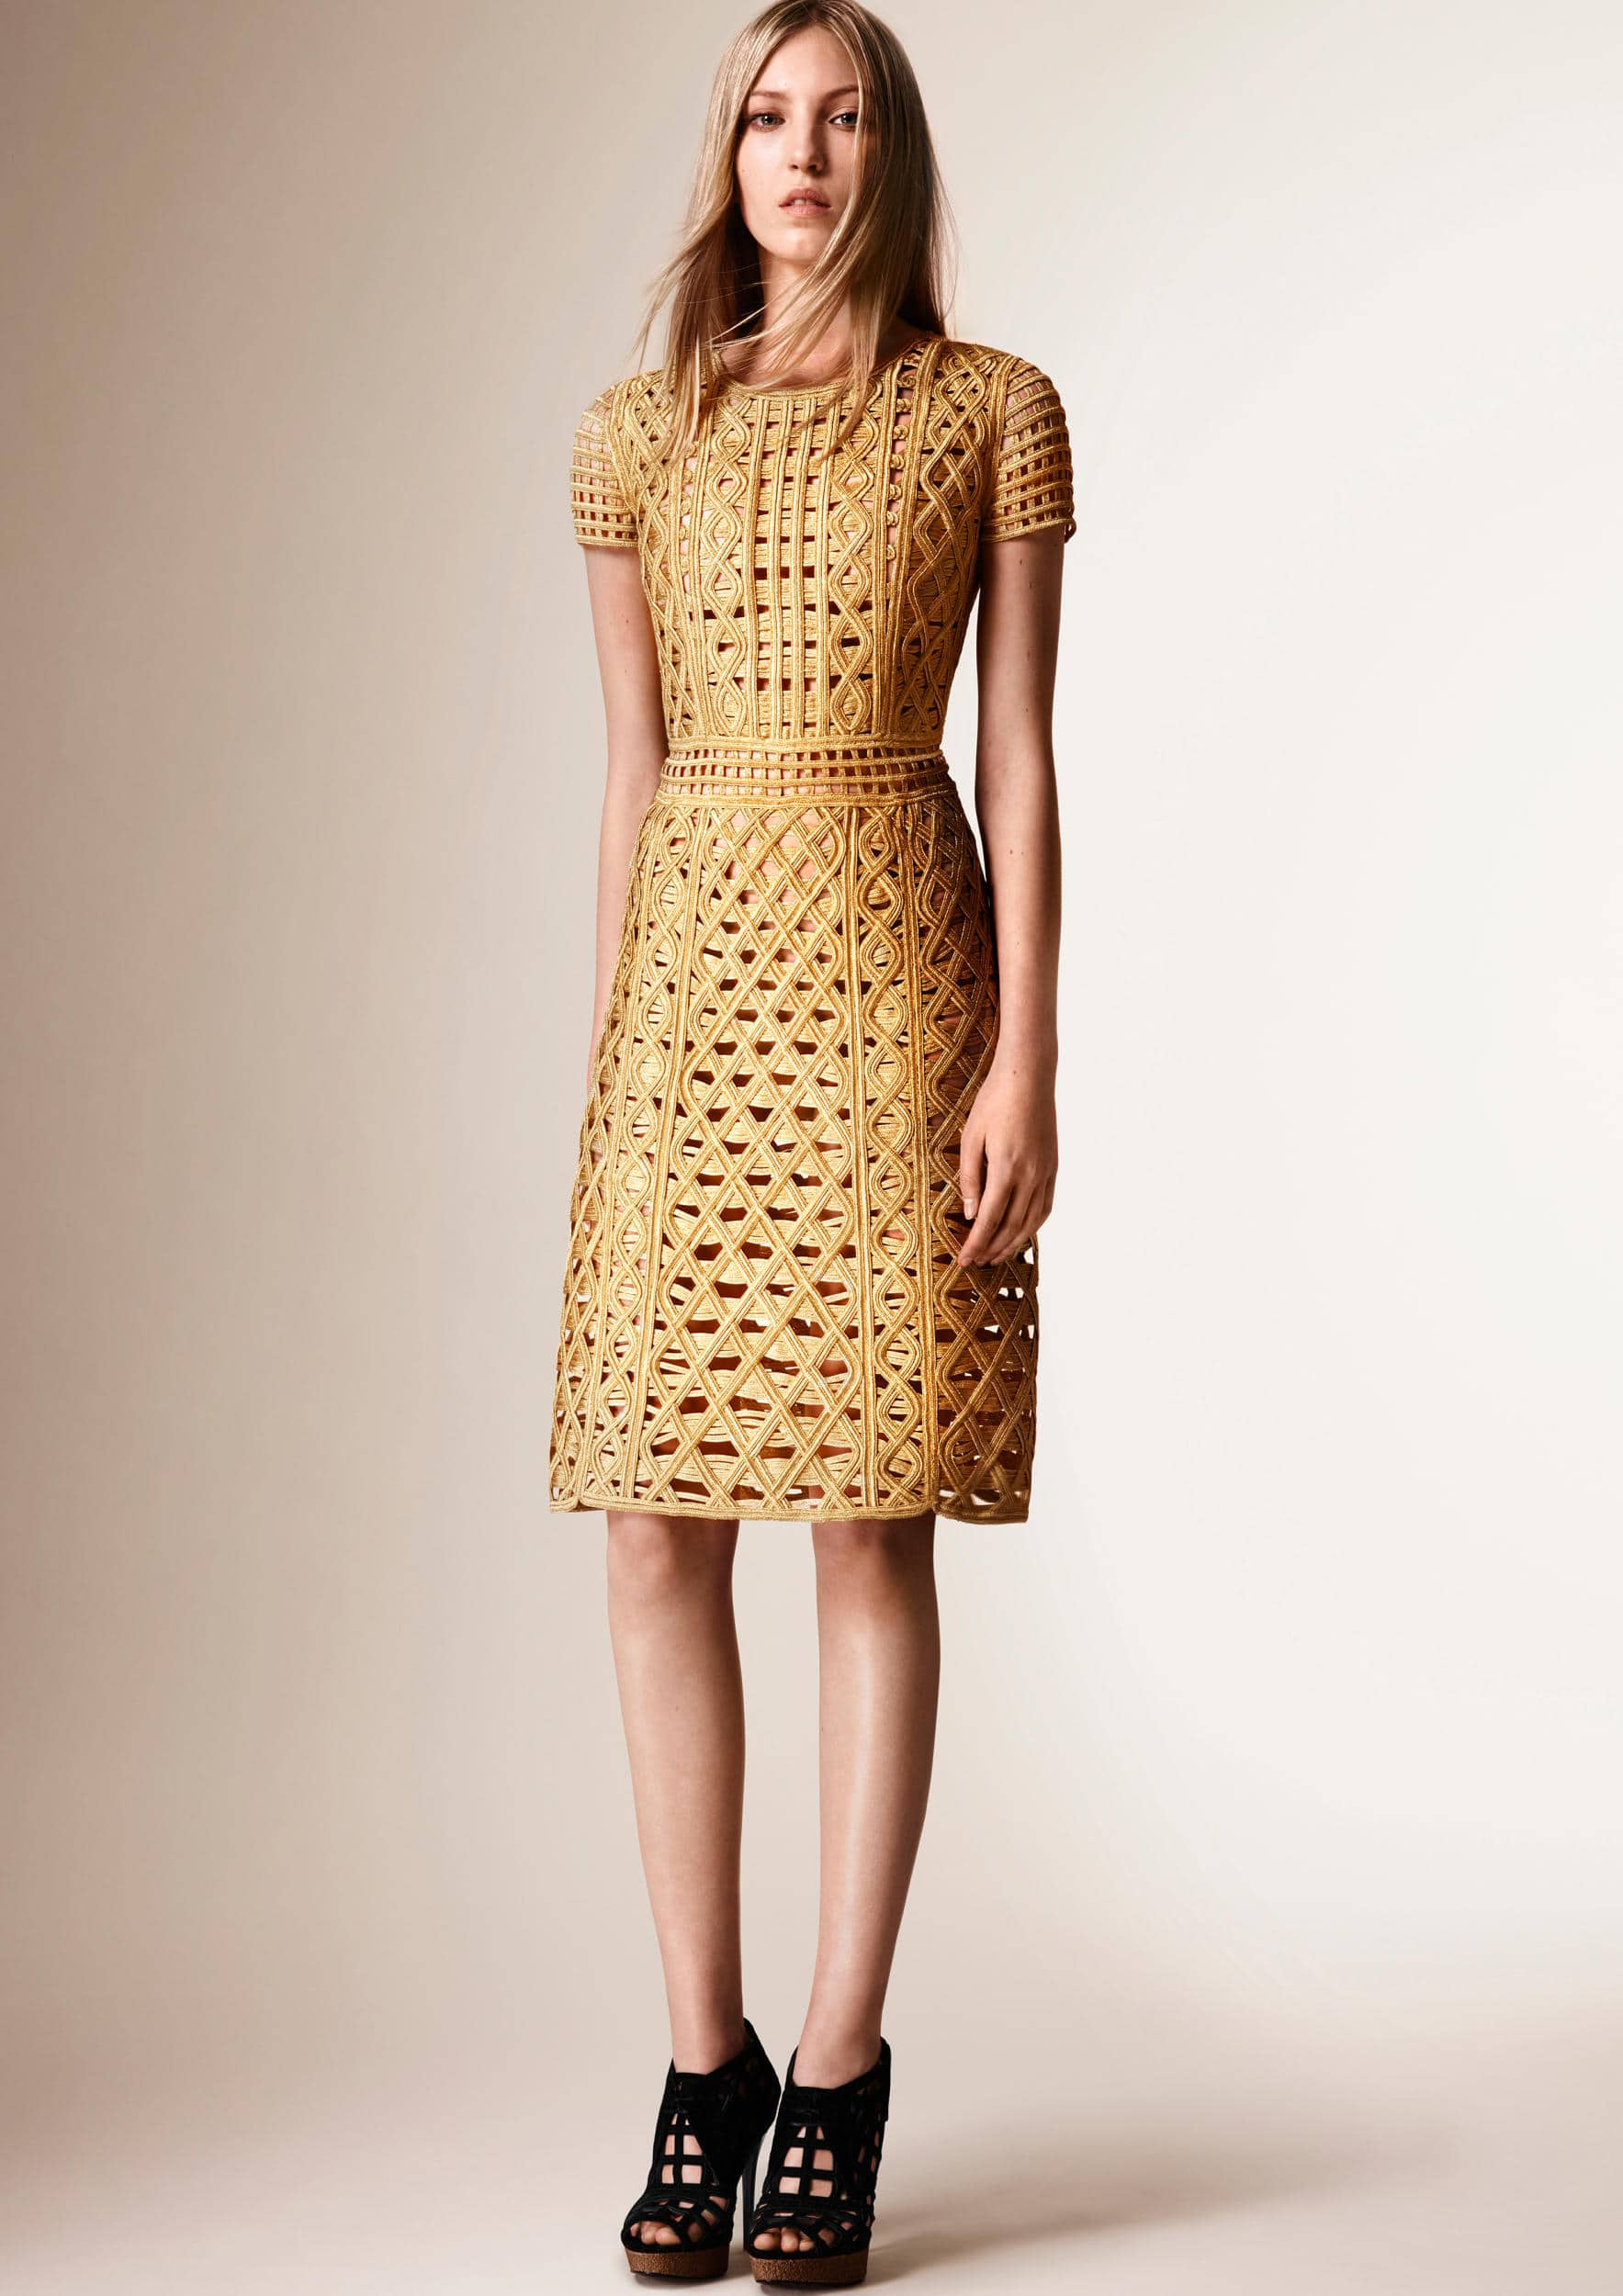 burberry-resort-collection-2016-14